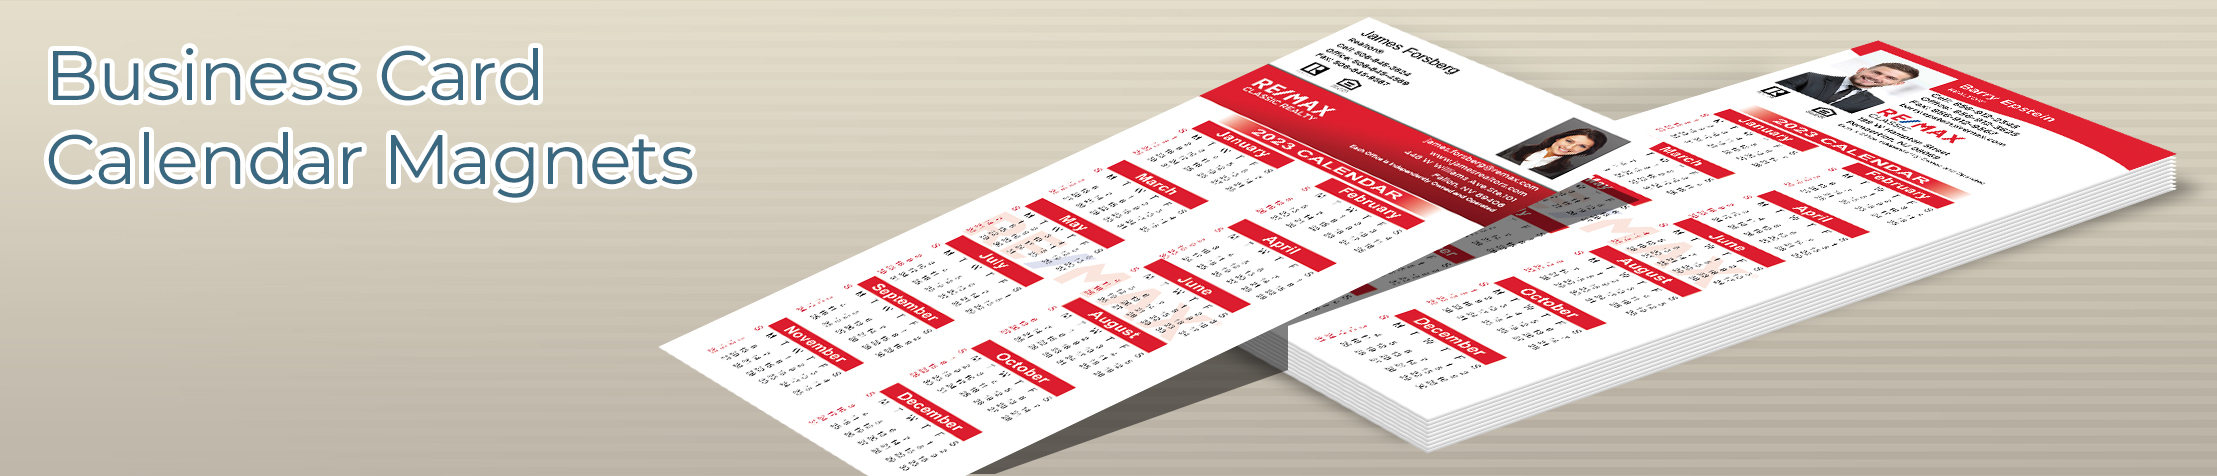 RE/MAX Real Estate Business Card Calendar Magnets - RE/MAX  2019 calendars with photo and contact info | BestPrintBuy.com